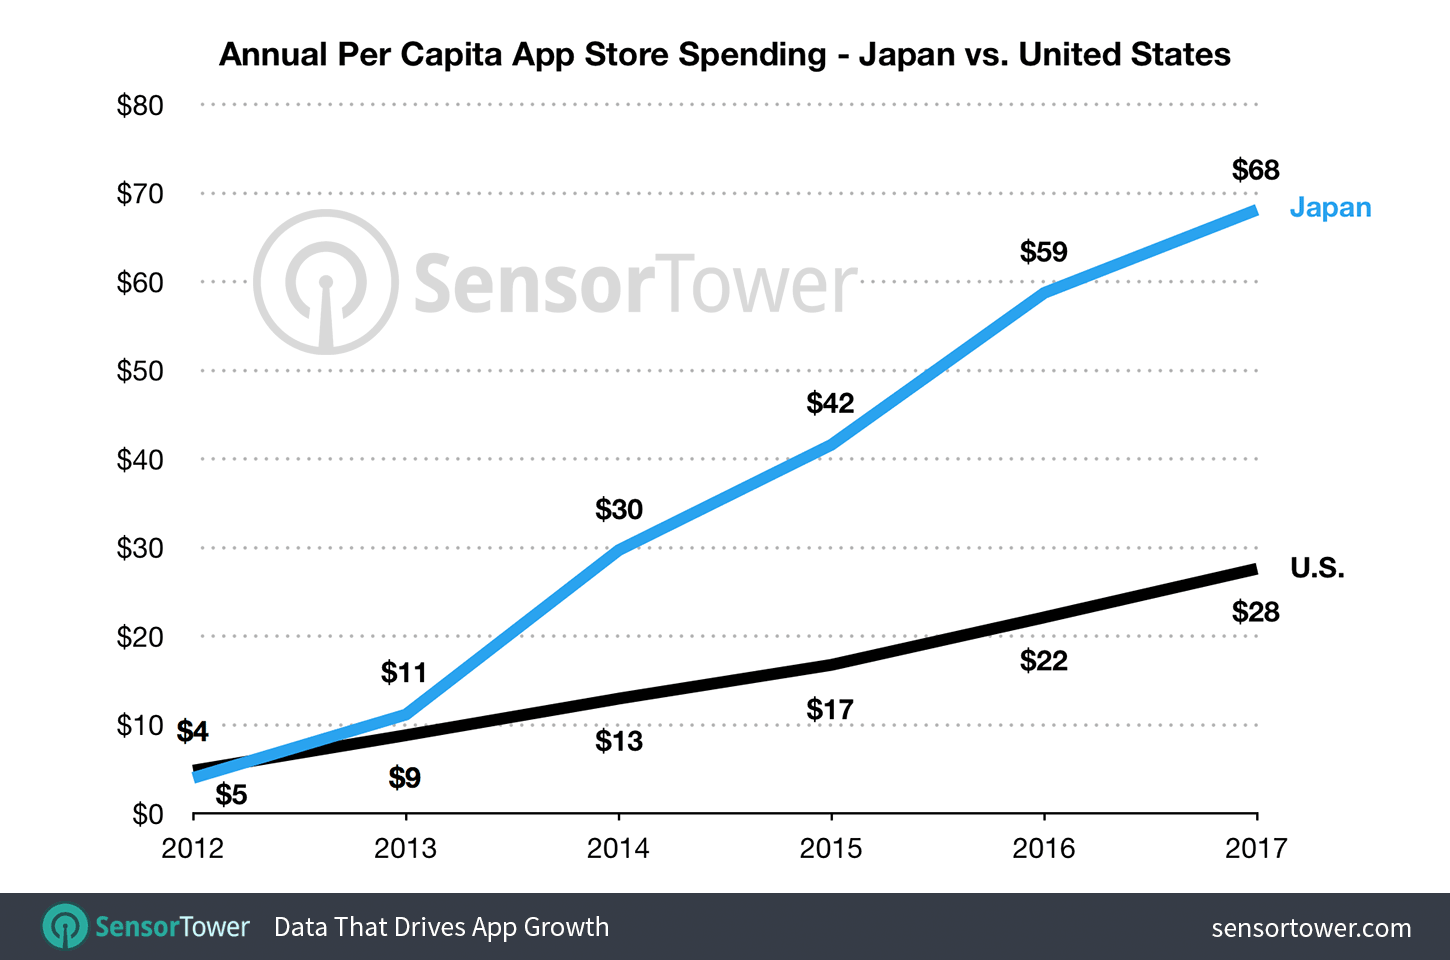 Chart showing annual per capita spending on Apple's App Store by Japan and the United States between 2012 and 2017